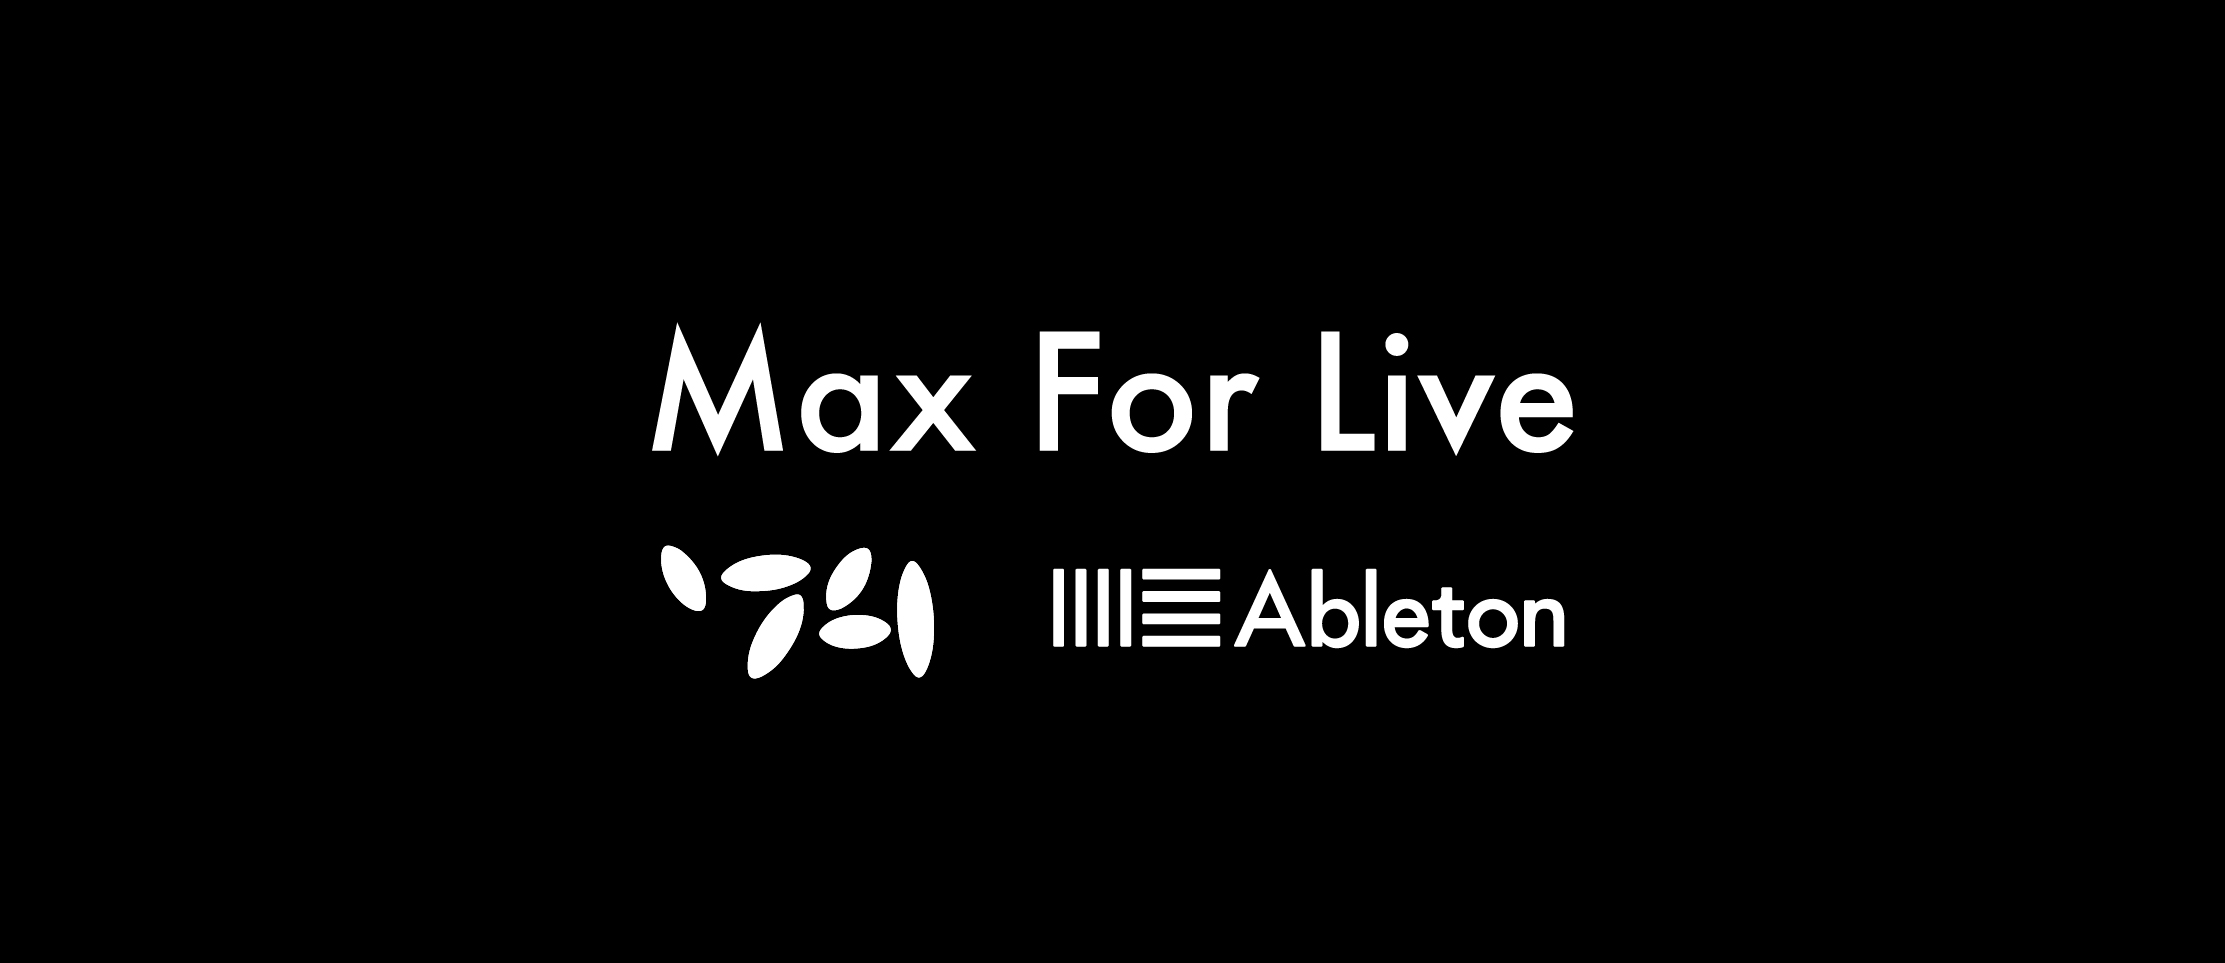 Max for Live logo